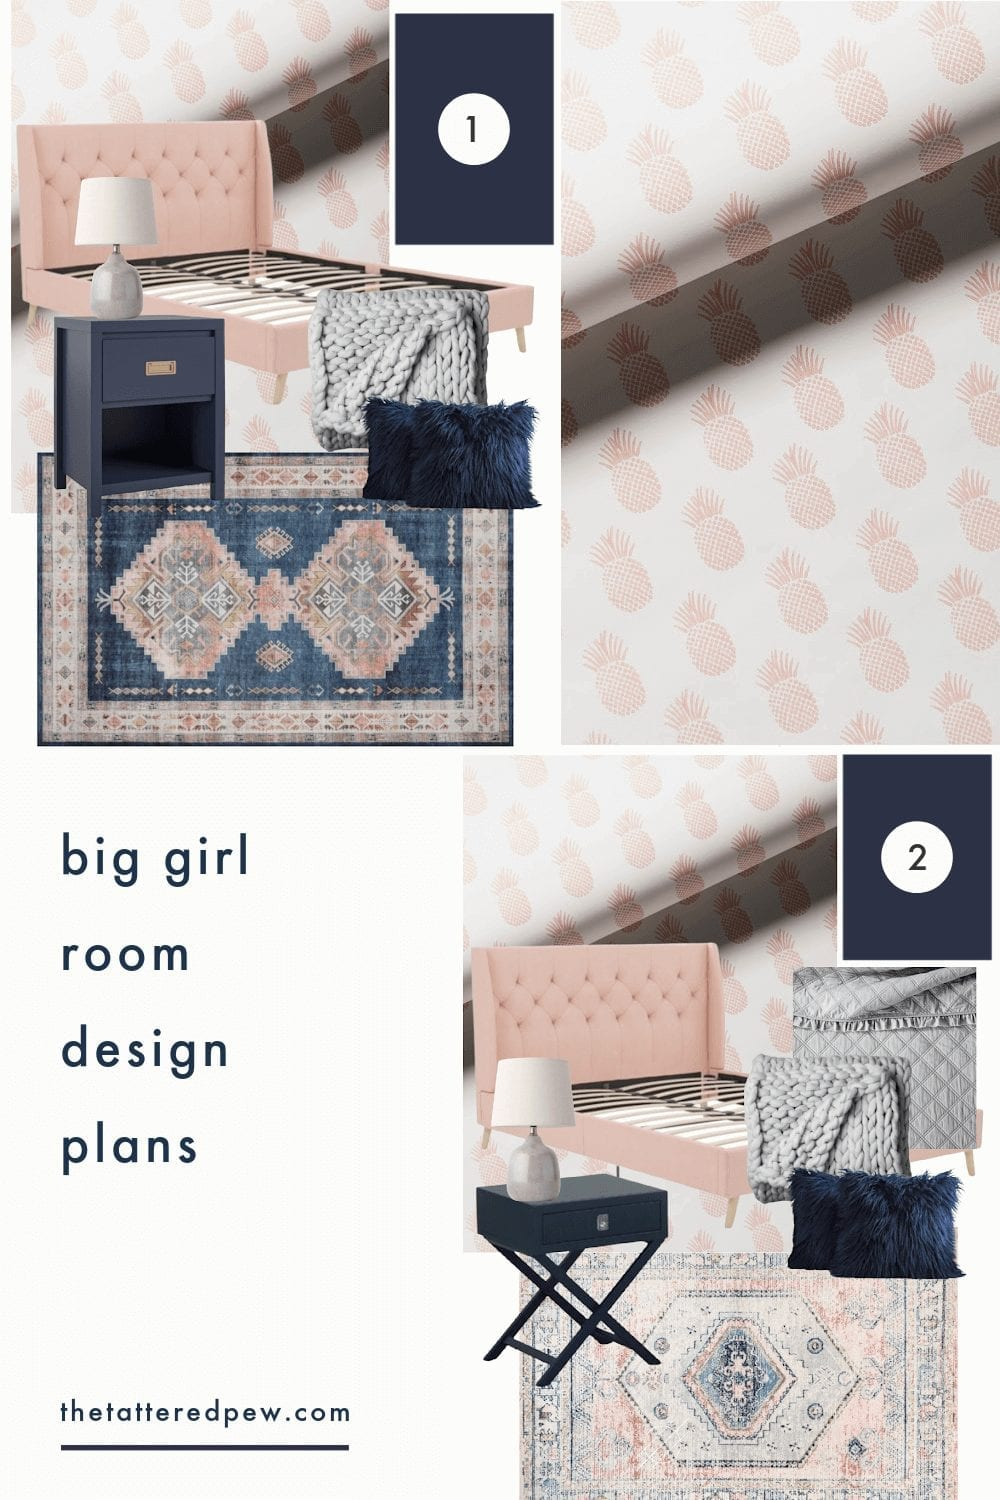 Big Girl Room Designs Plans for our youngest!